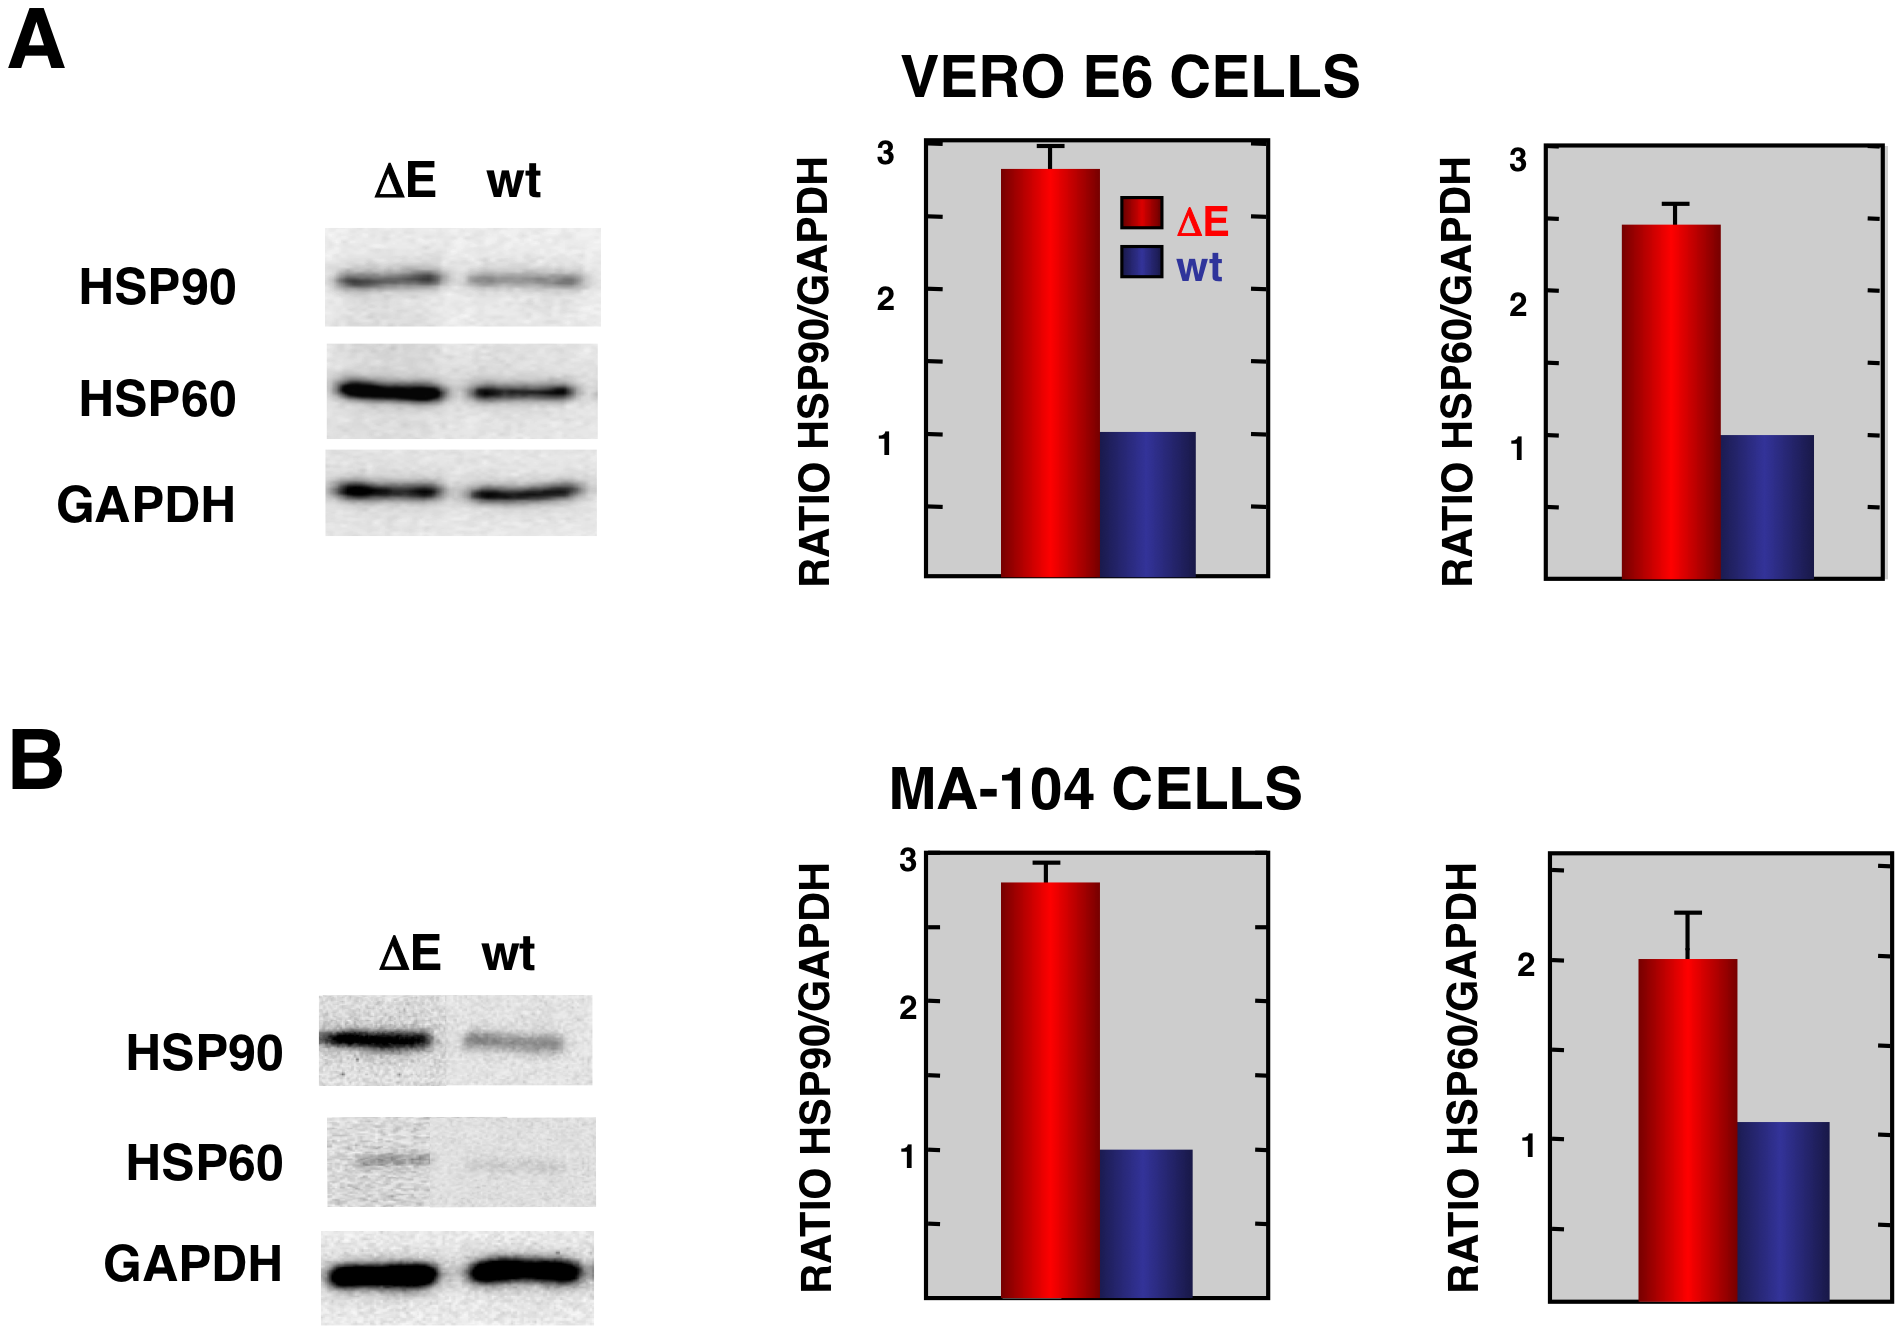 Stress response proteins are differentially expressed in rSARS-CoV-ΔE versus rSARS-CoV-infected cells.